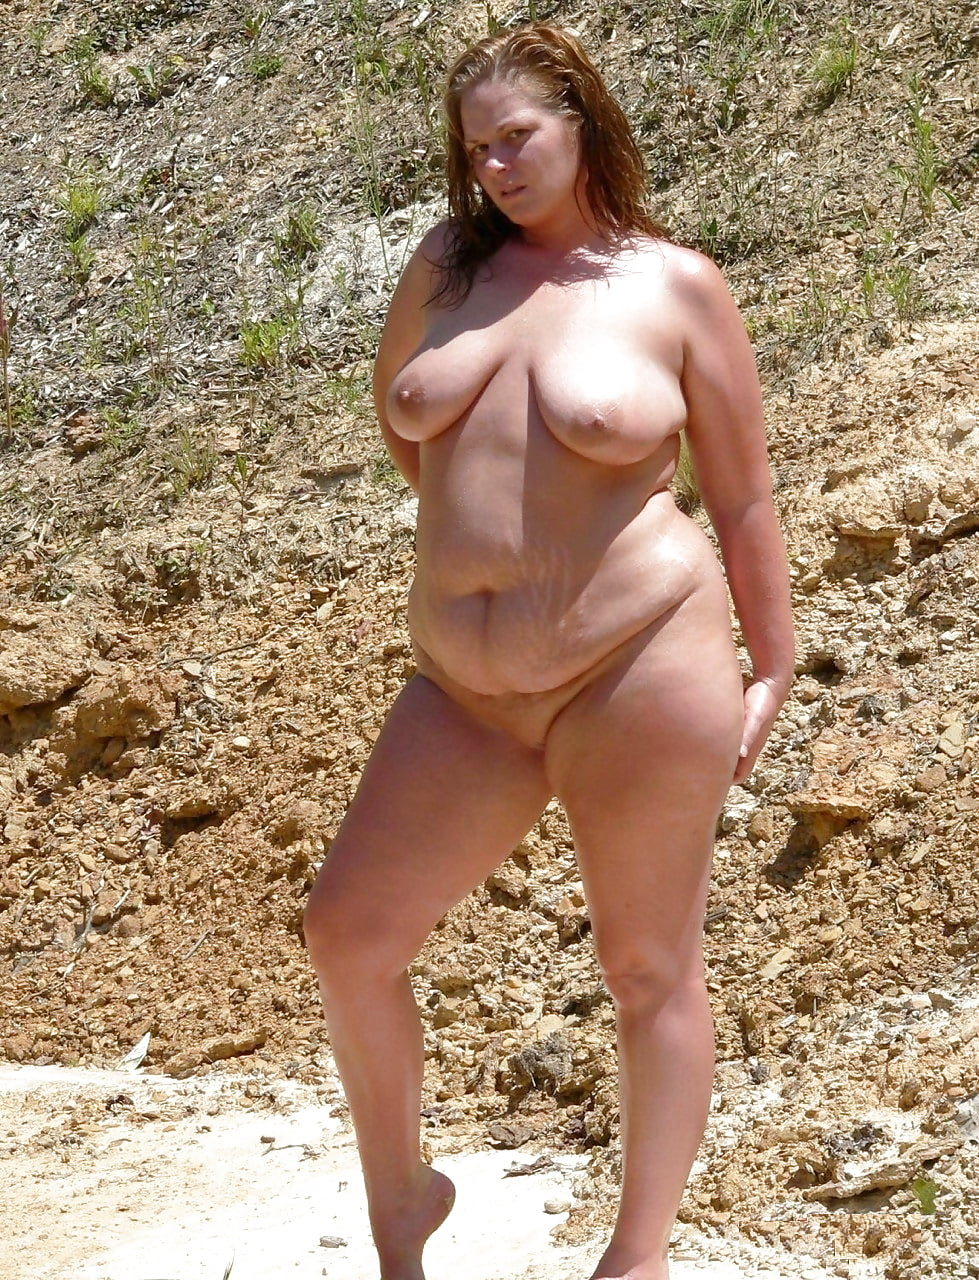 Chubby nudists nude pictures — photo 9